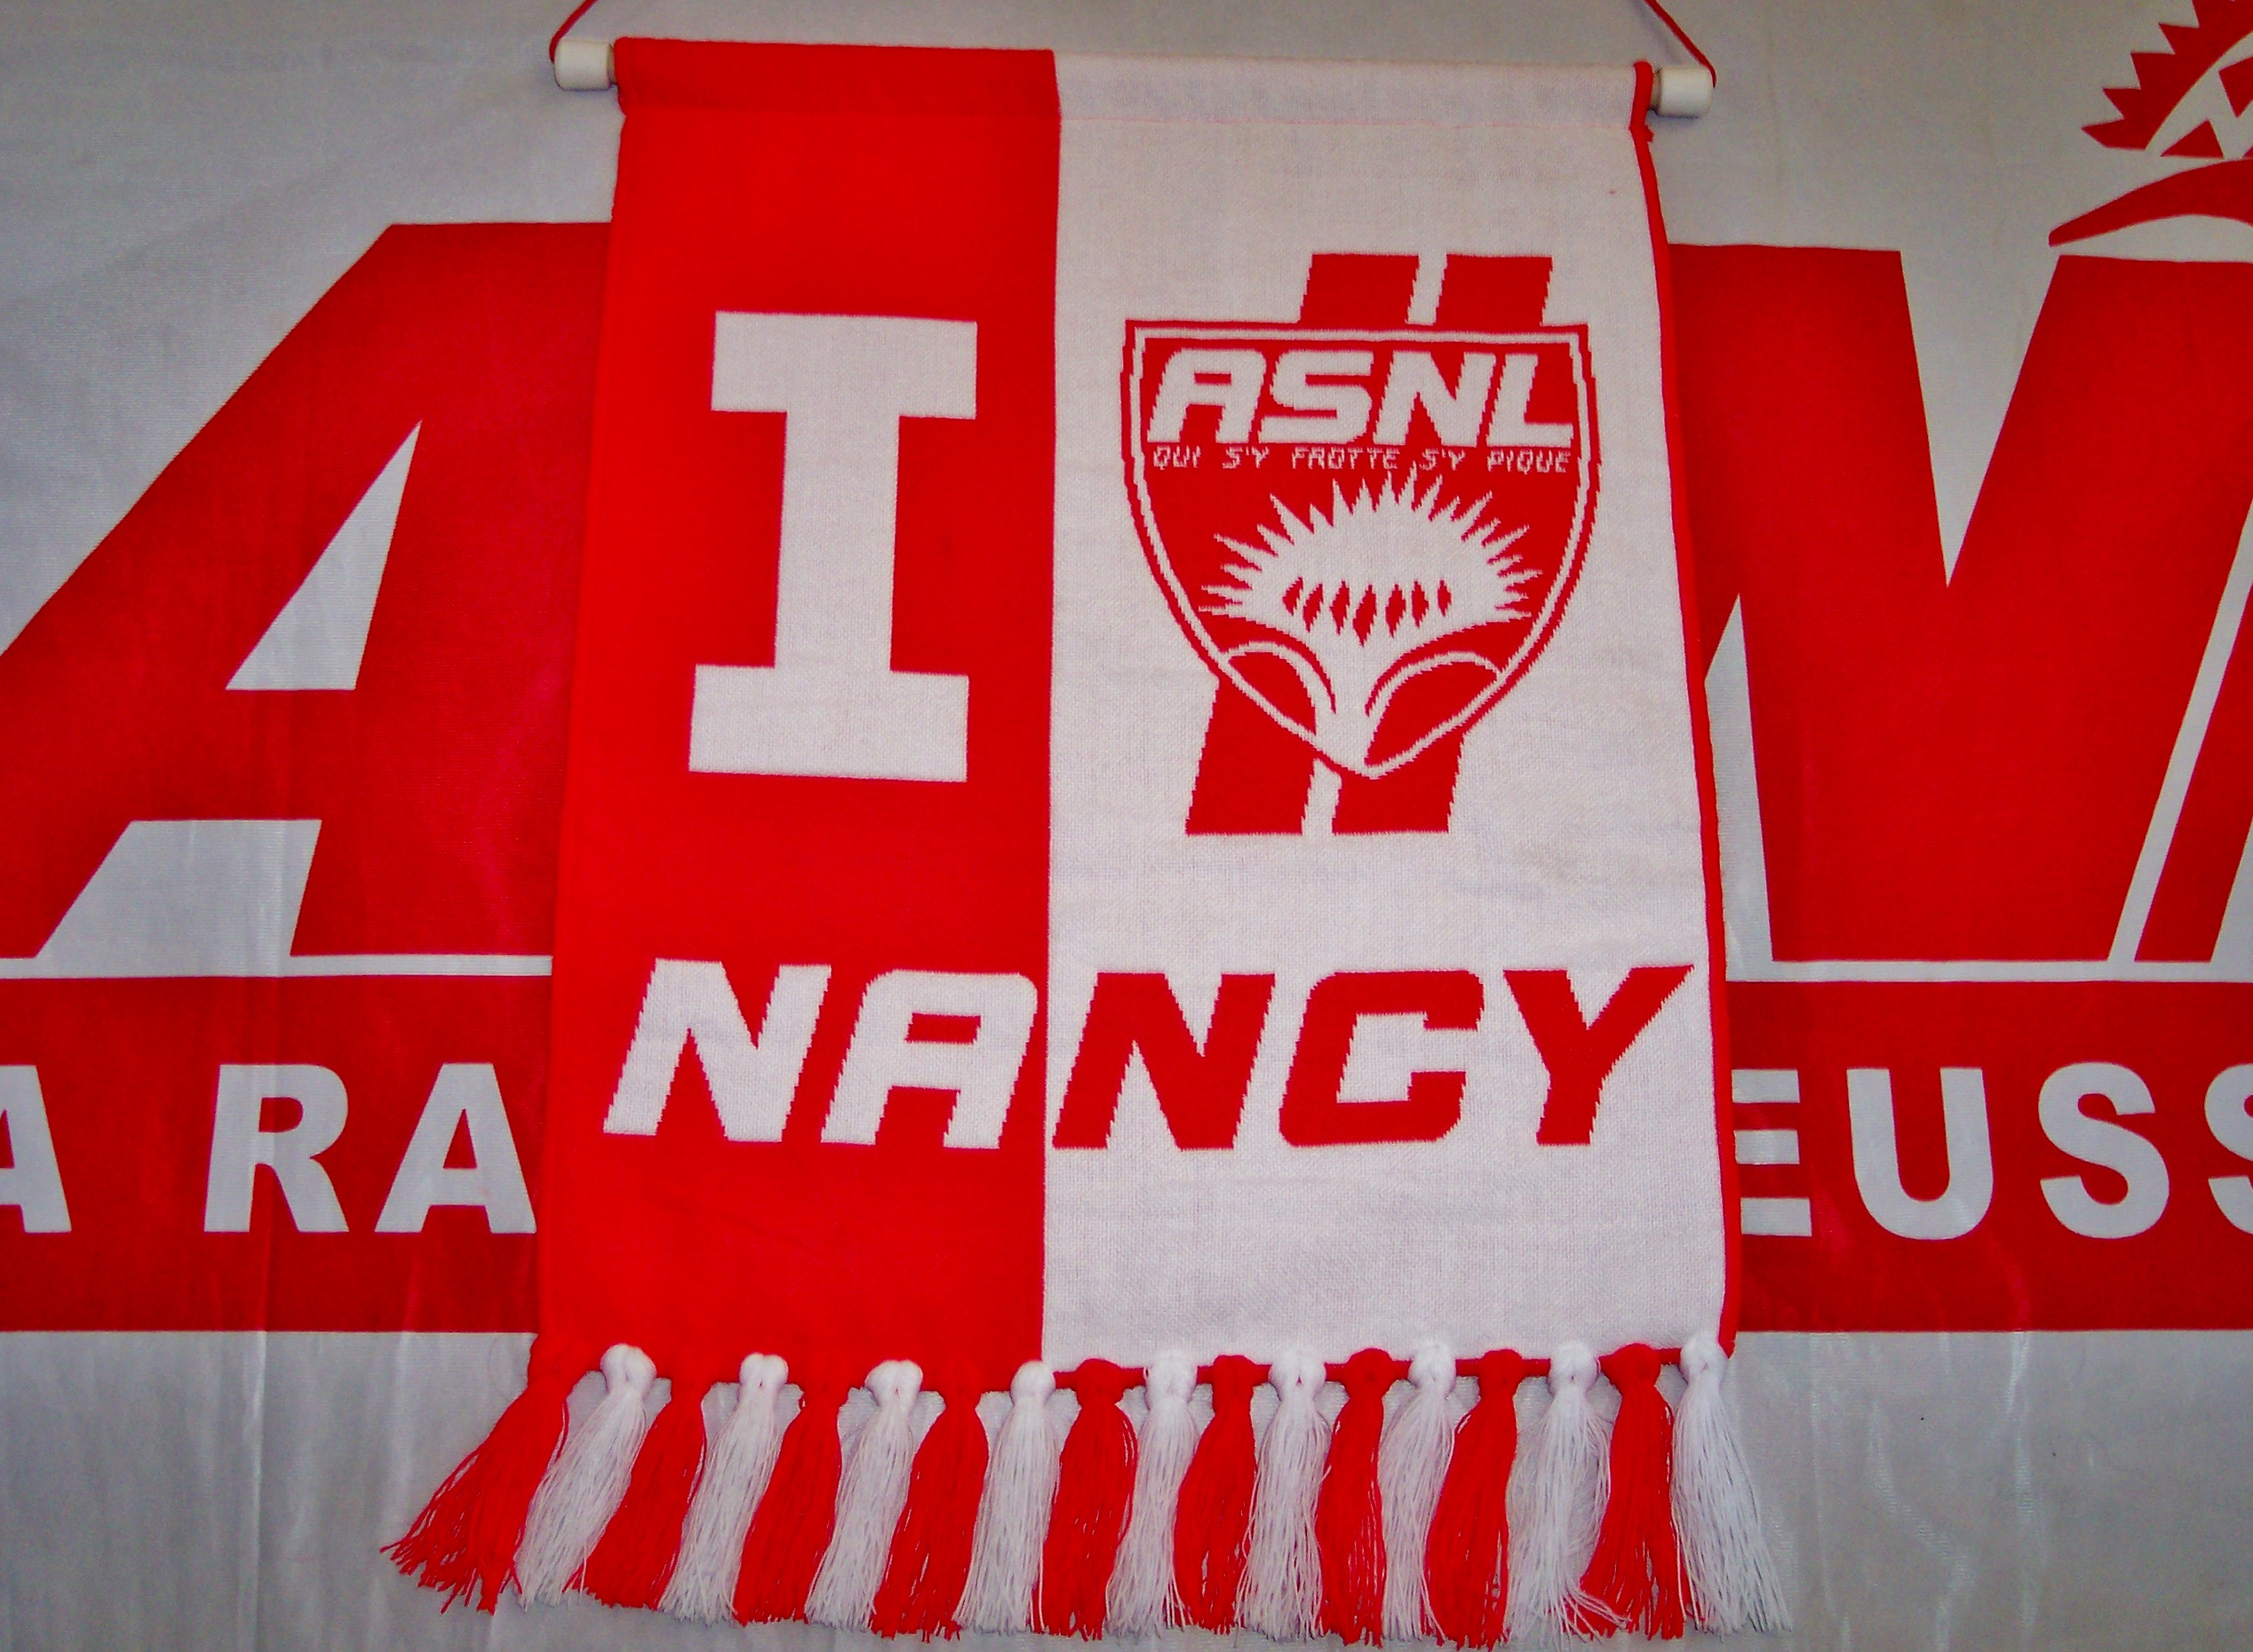 Grand fanion ASNL 2012-2013  (Collection : ASNL-Infos)